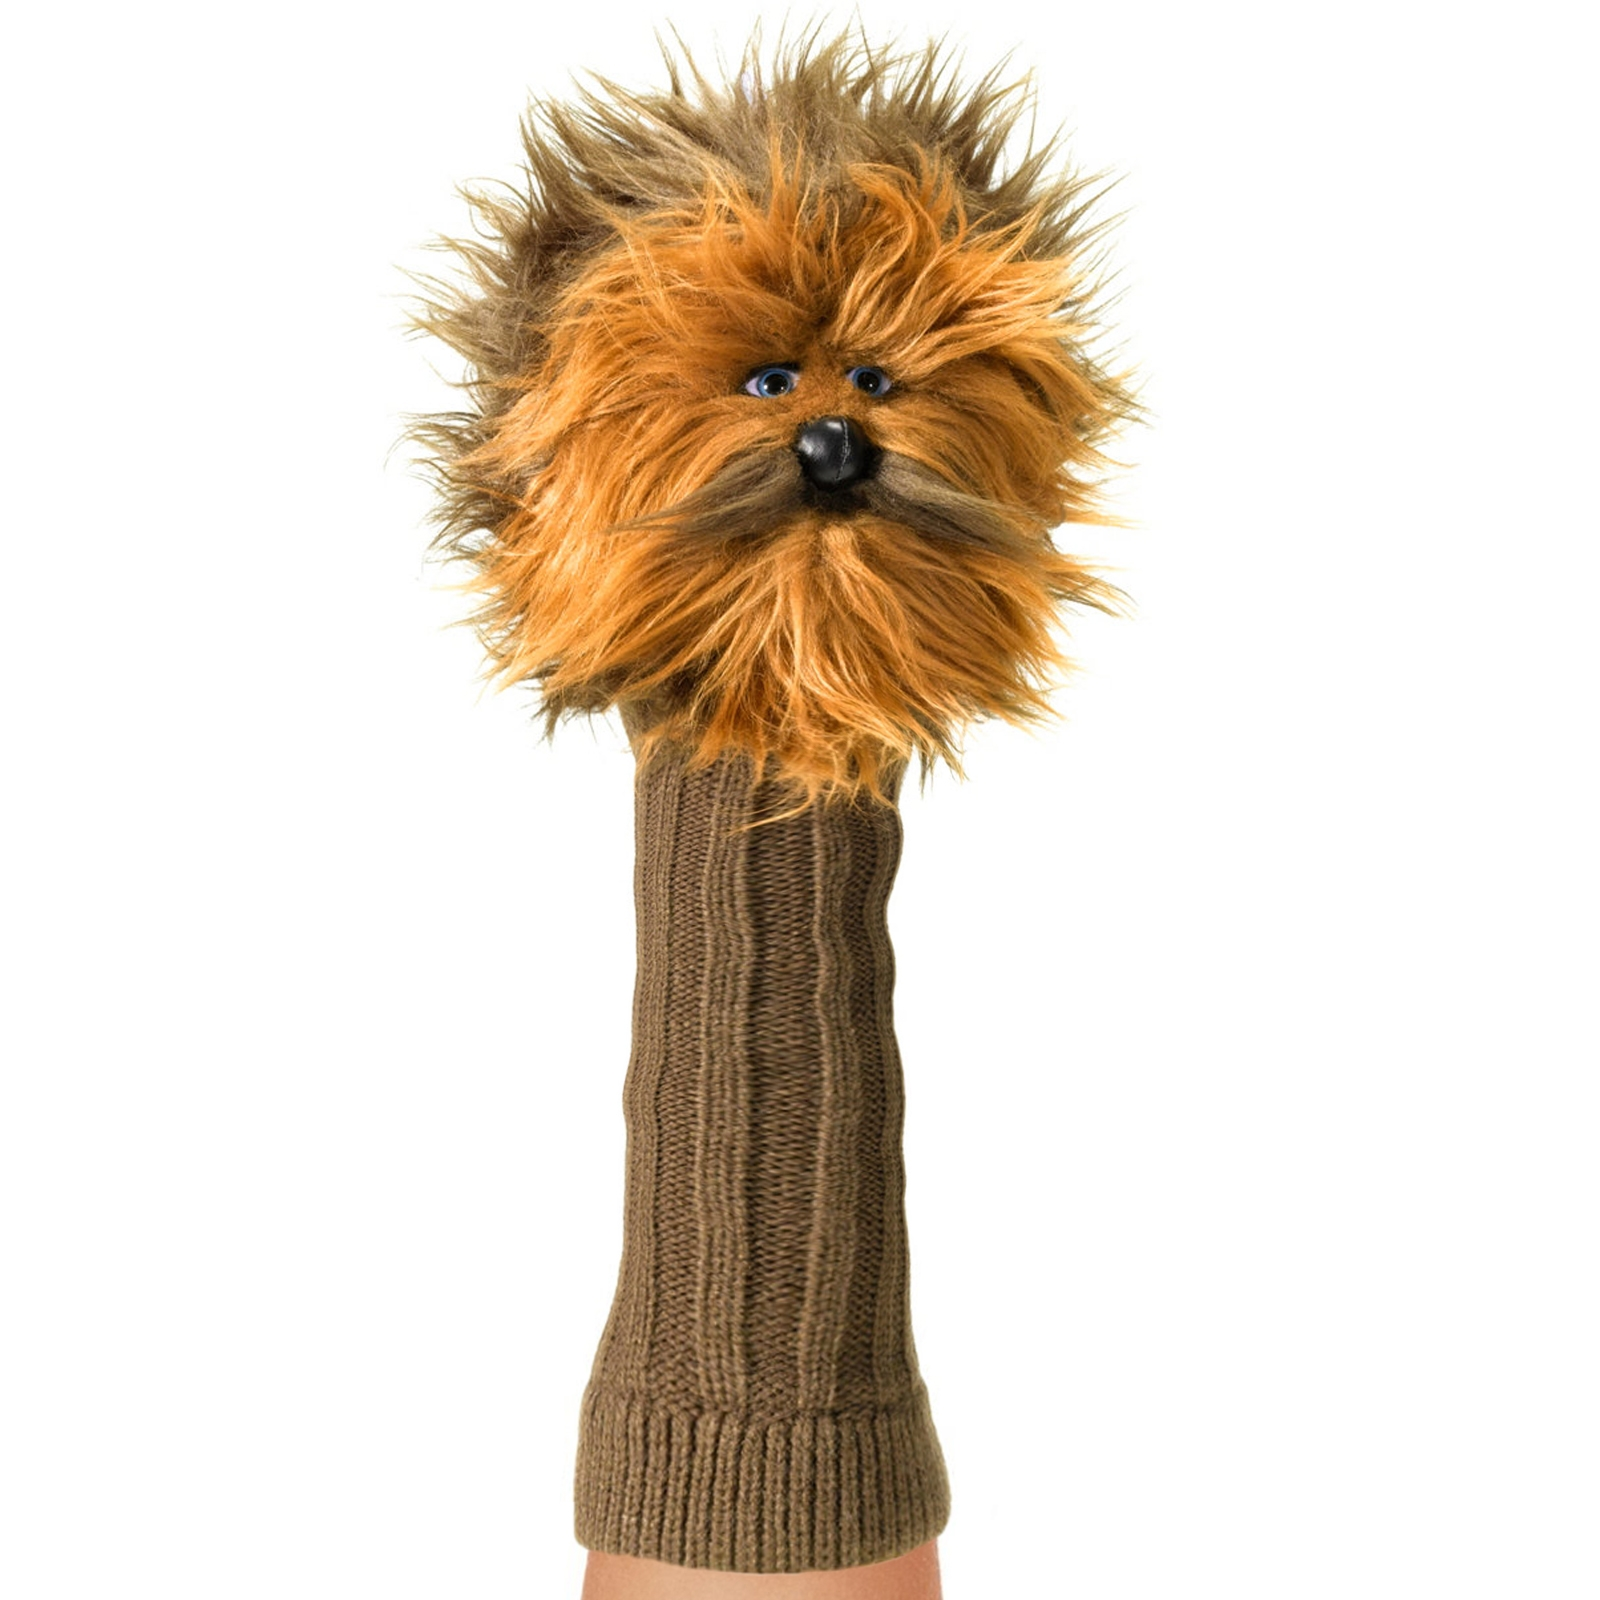 Licensed Hand Puppet Star Wars Figure for Children Self Expression - Chewbacca